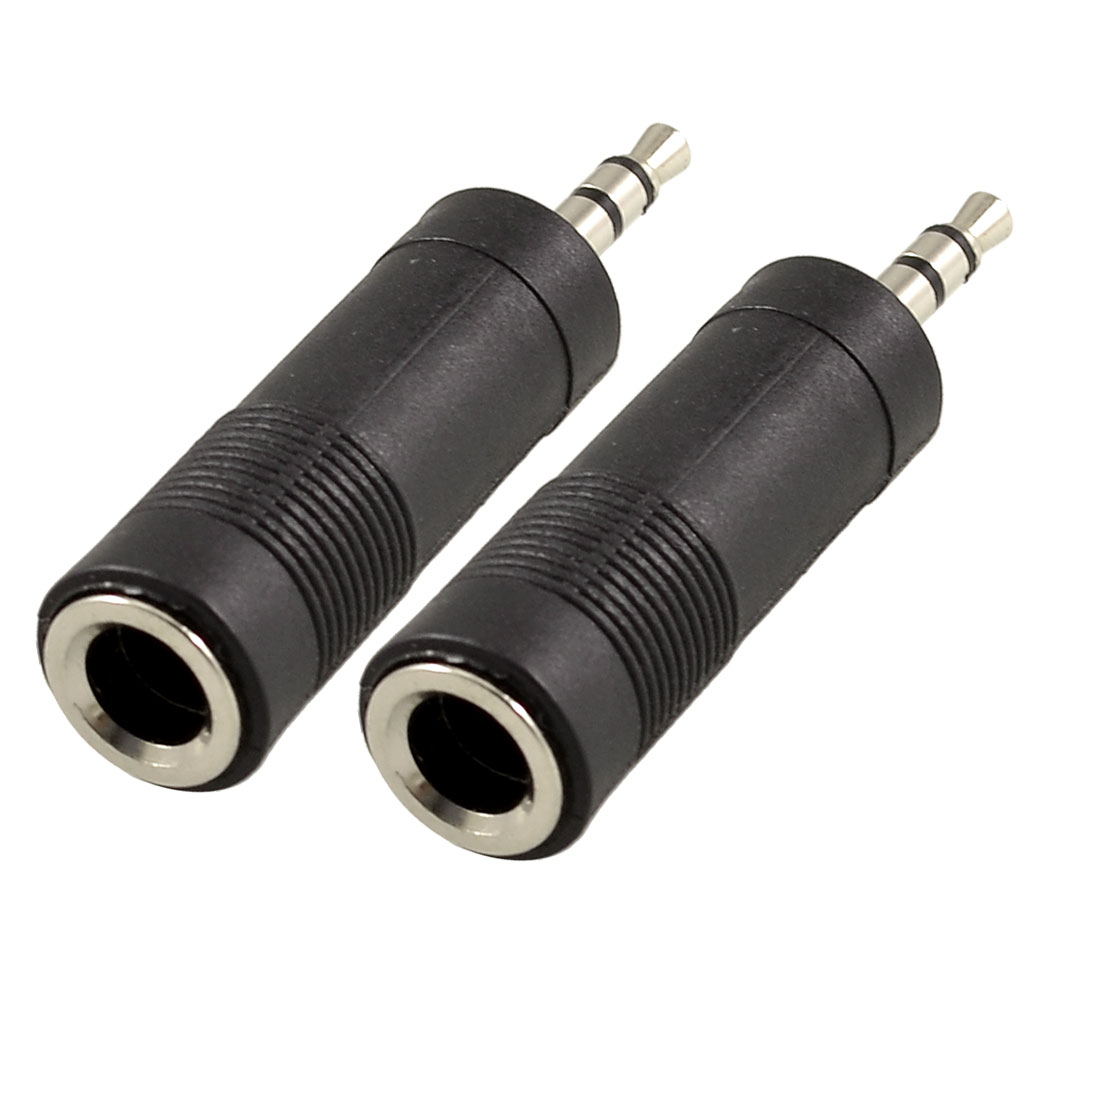 3.5mm Male to 6.35mm Female Jack Audio Speaker Cable Connector Adapter Black 2 Pcs